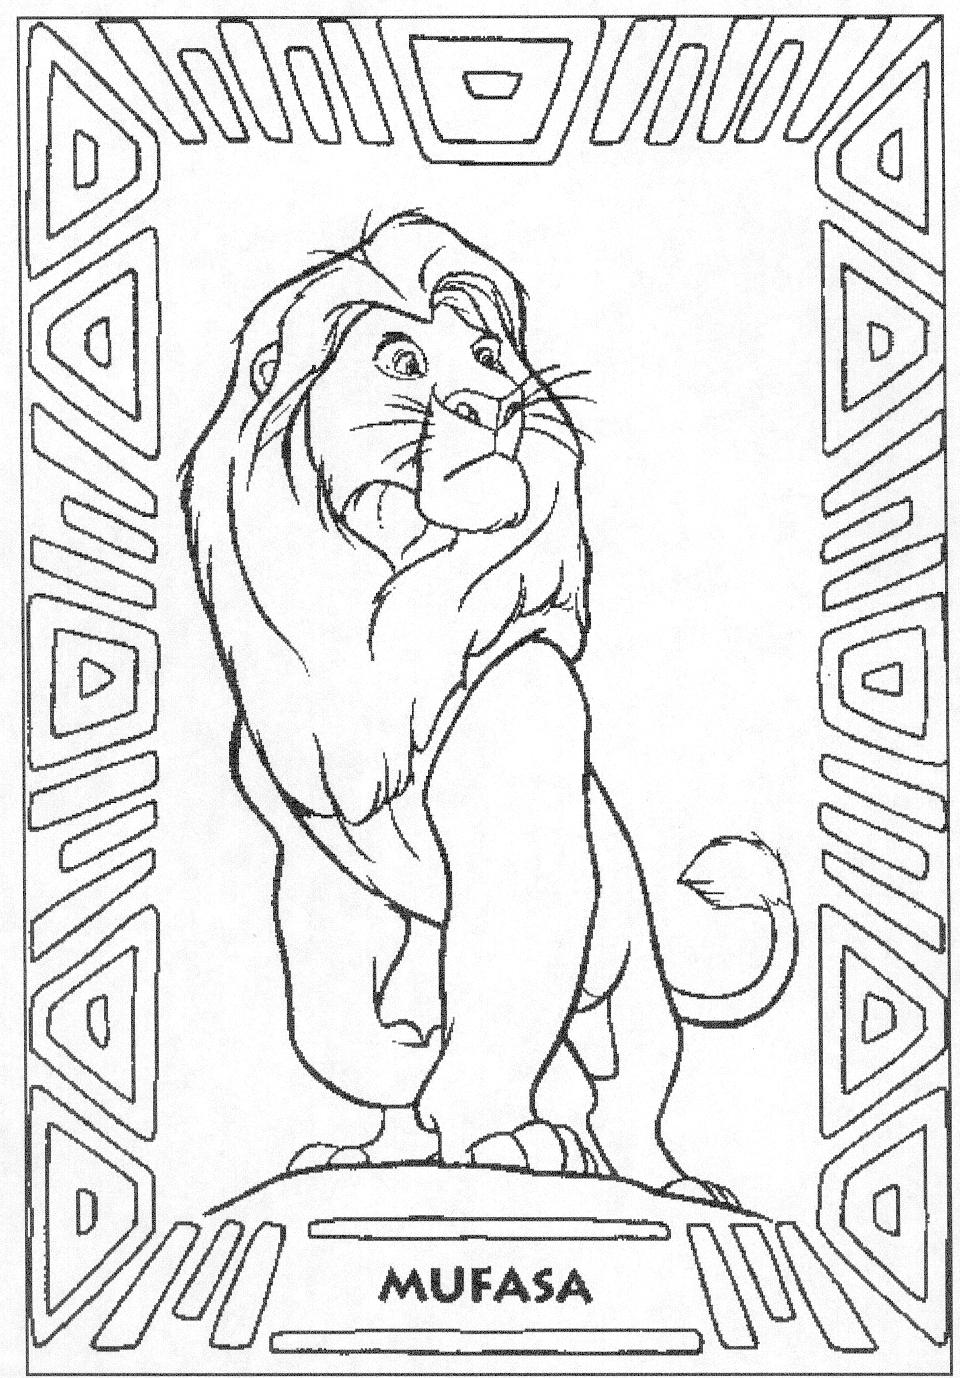 The Lion King Coloring Pages Mufasa - Coloring Home